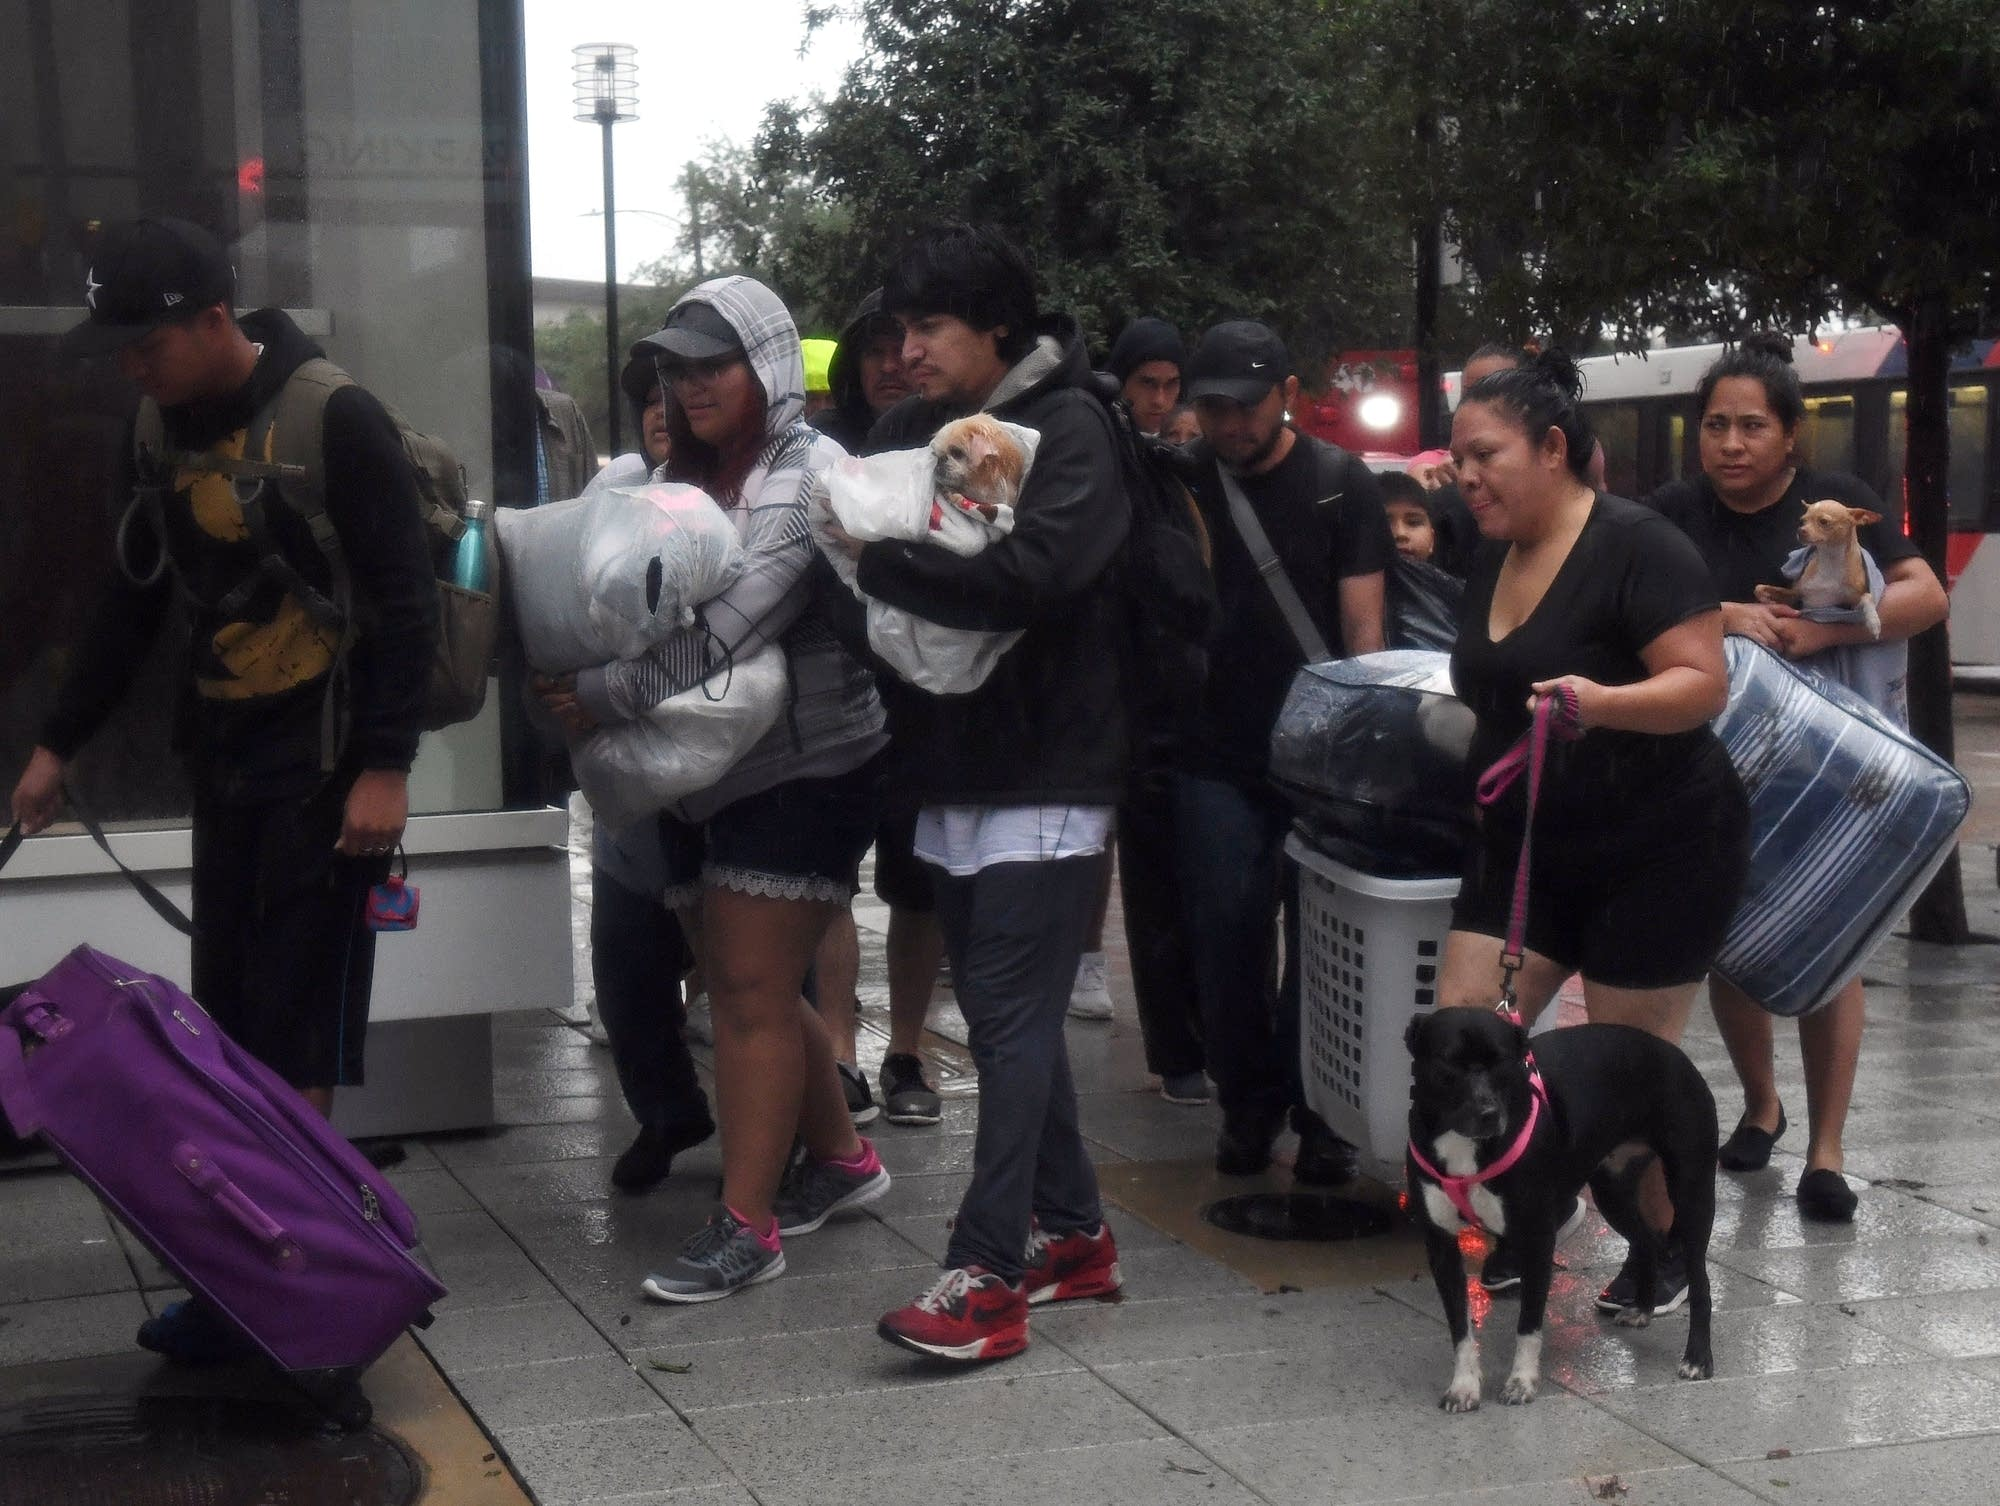 Evacuees arrive at the Convention Center shelter.